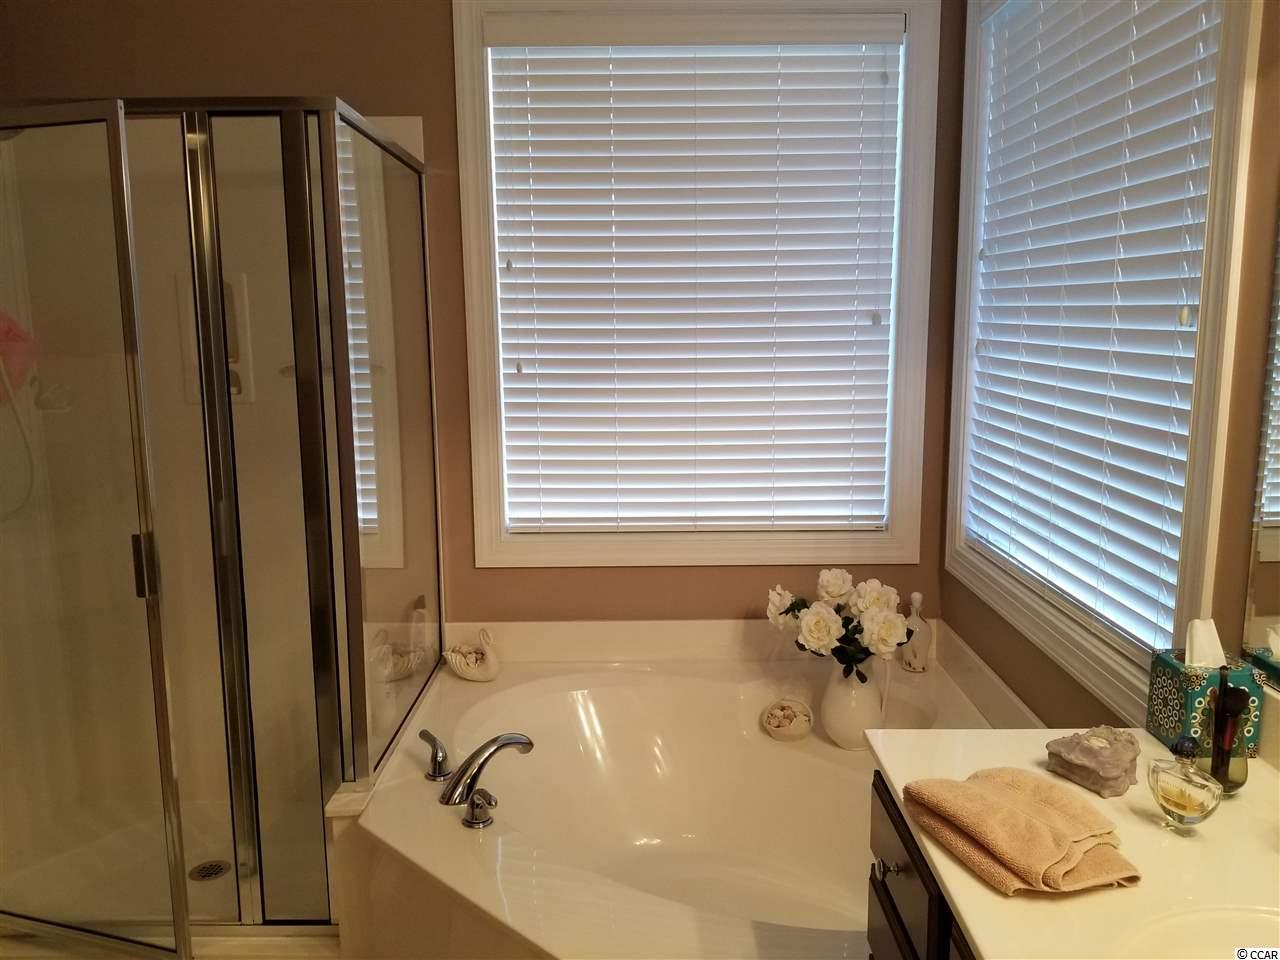 Additional photo for property listing at 604 Chatman Court 604 Chatman Court Murrells Inlet, South Carolina 29576 United States